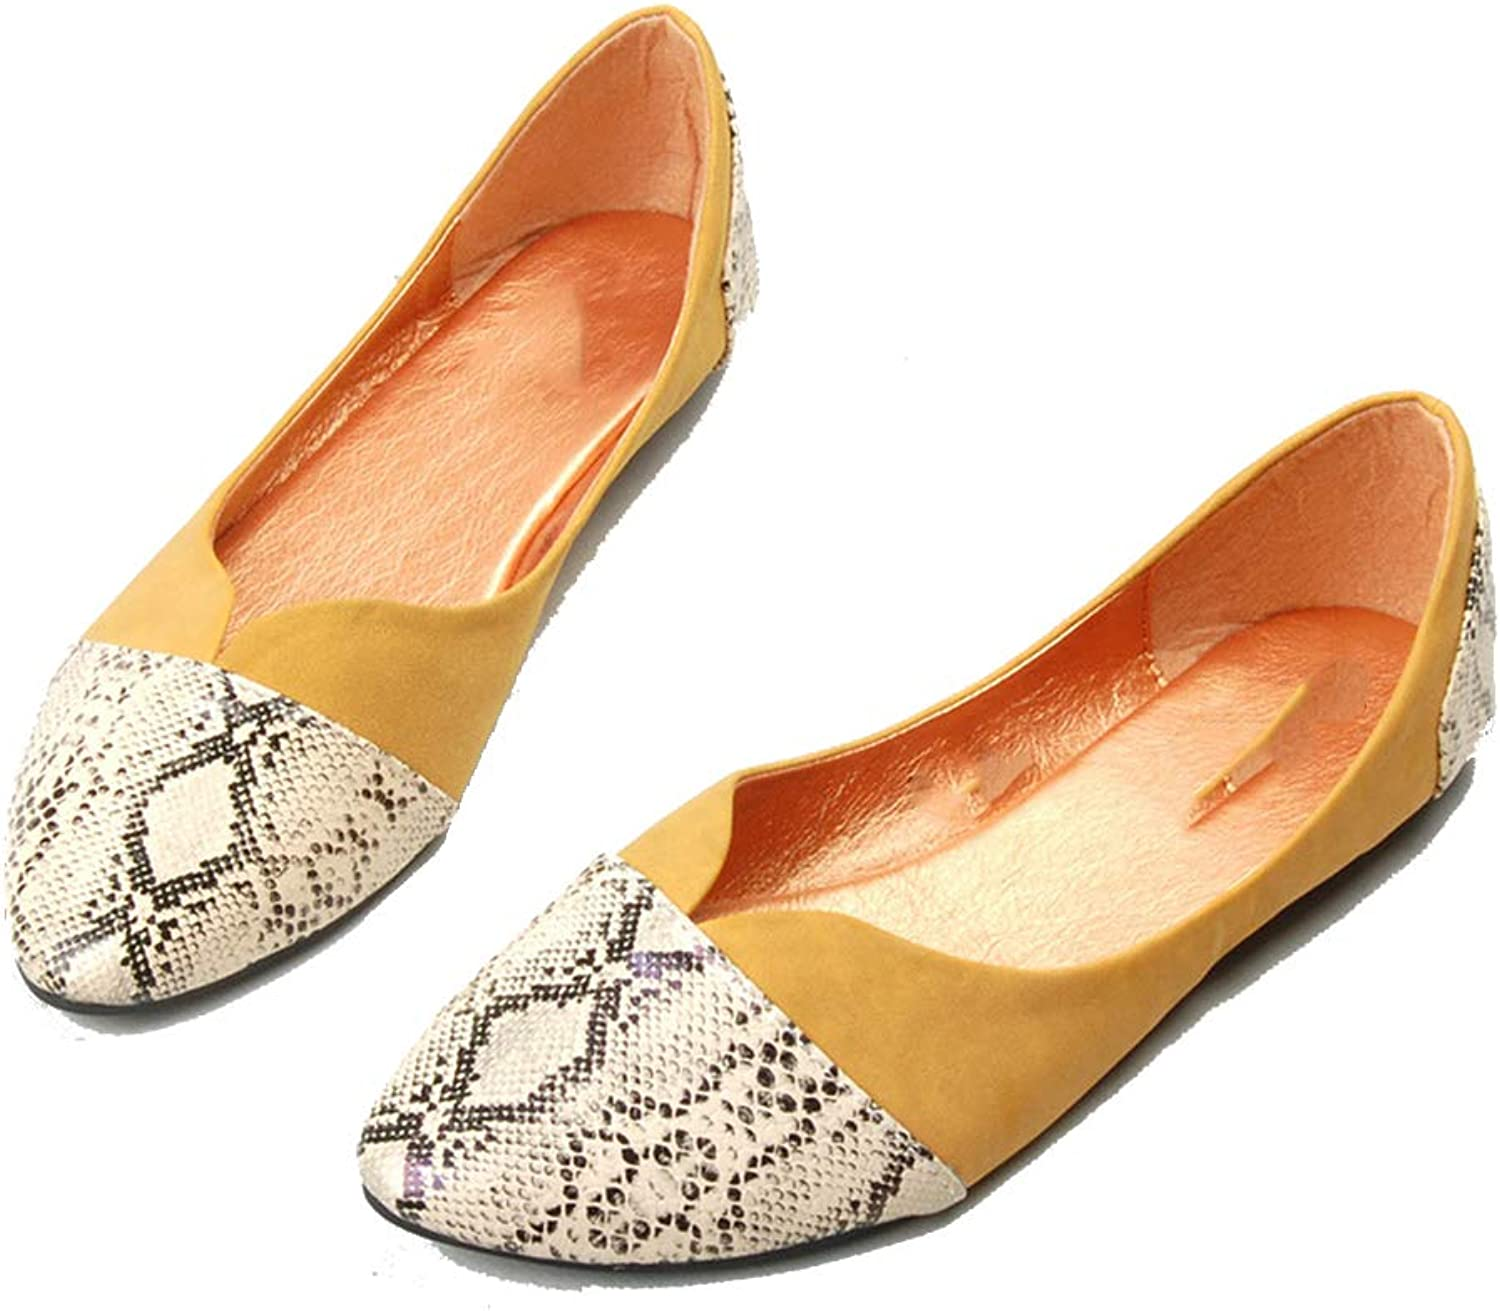 WodCht Spring Autumn Women's Loafers Loafers Women Flat Heel shoes Boat shoes,Yellow,5